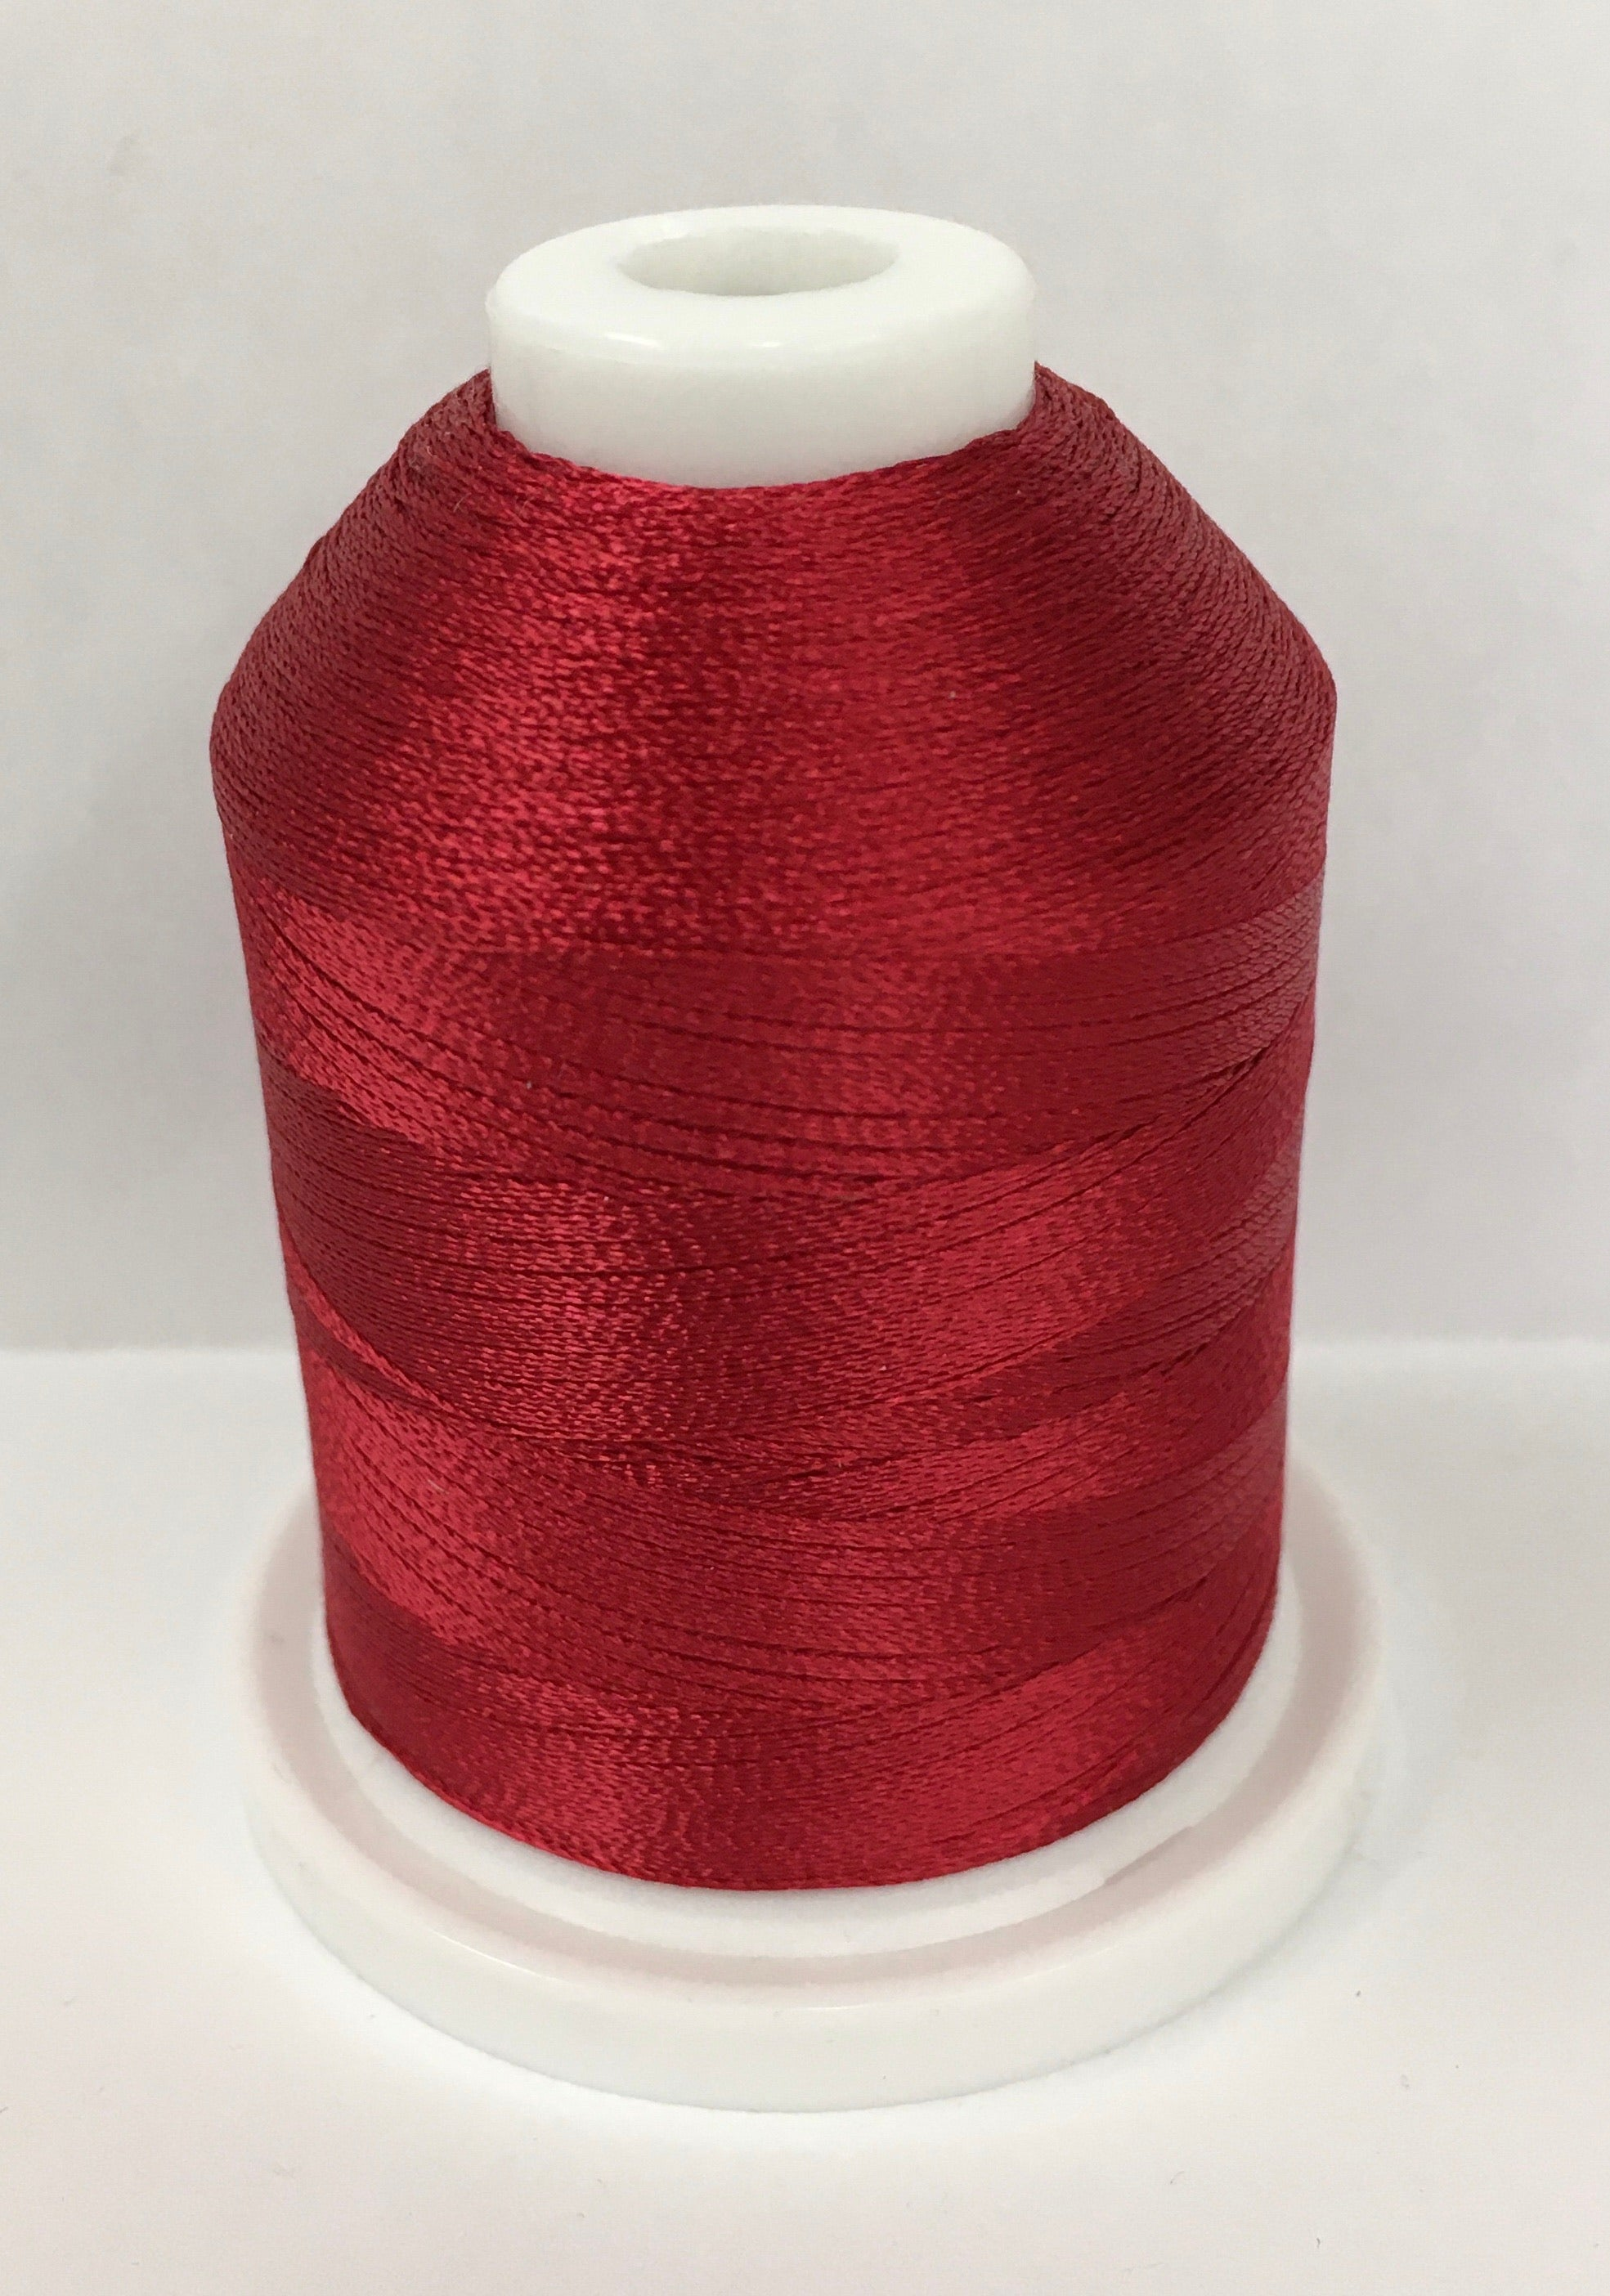 Robison-Anton Rayon Thread - 2267 Wildfire